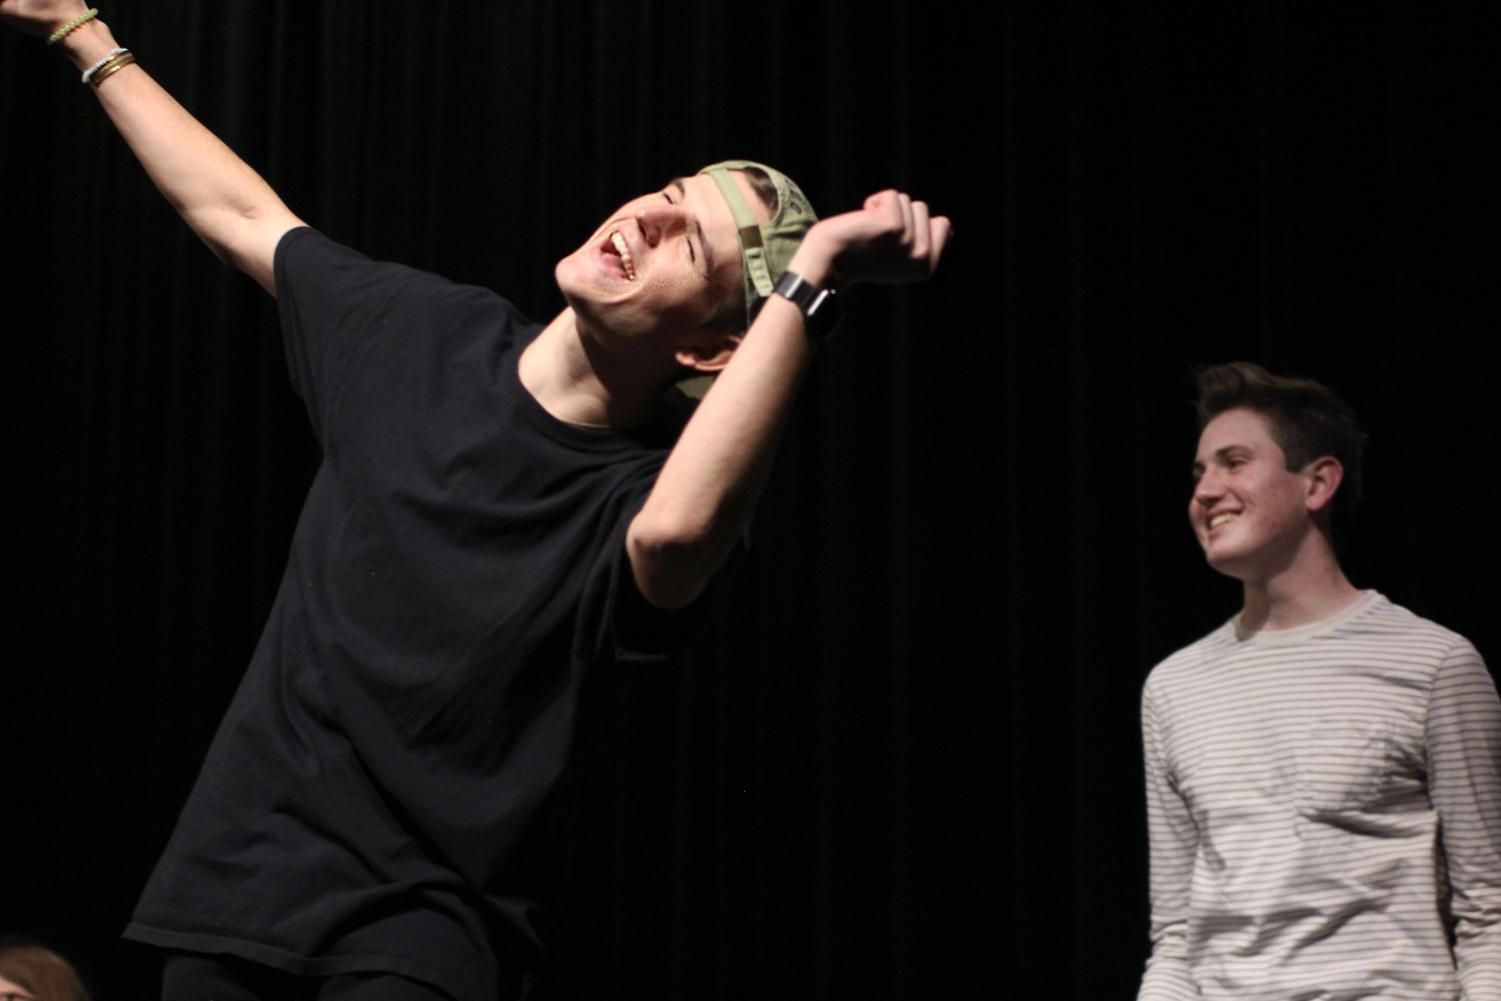 Senior Bryce Fuller and junior Jack Marsden entertain students during intermission at Mr. Lovejoy with an improv show.